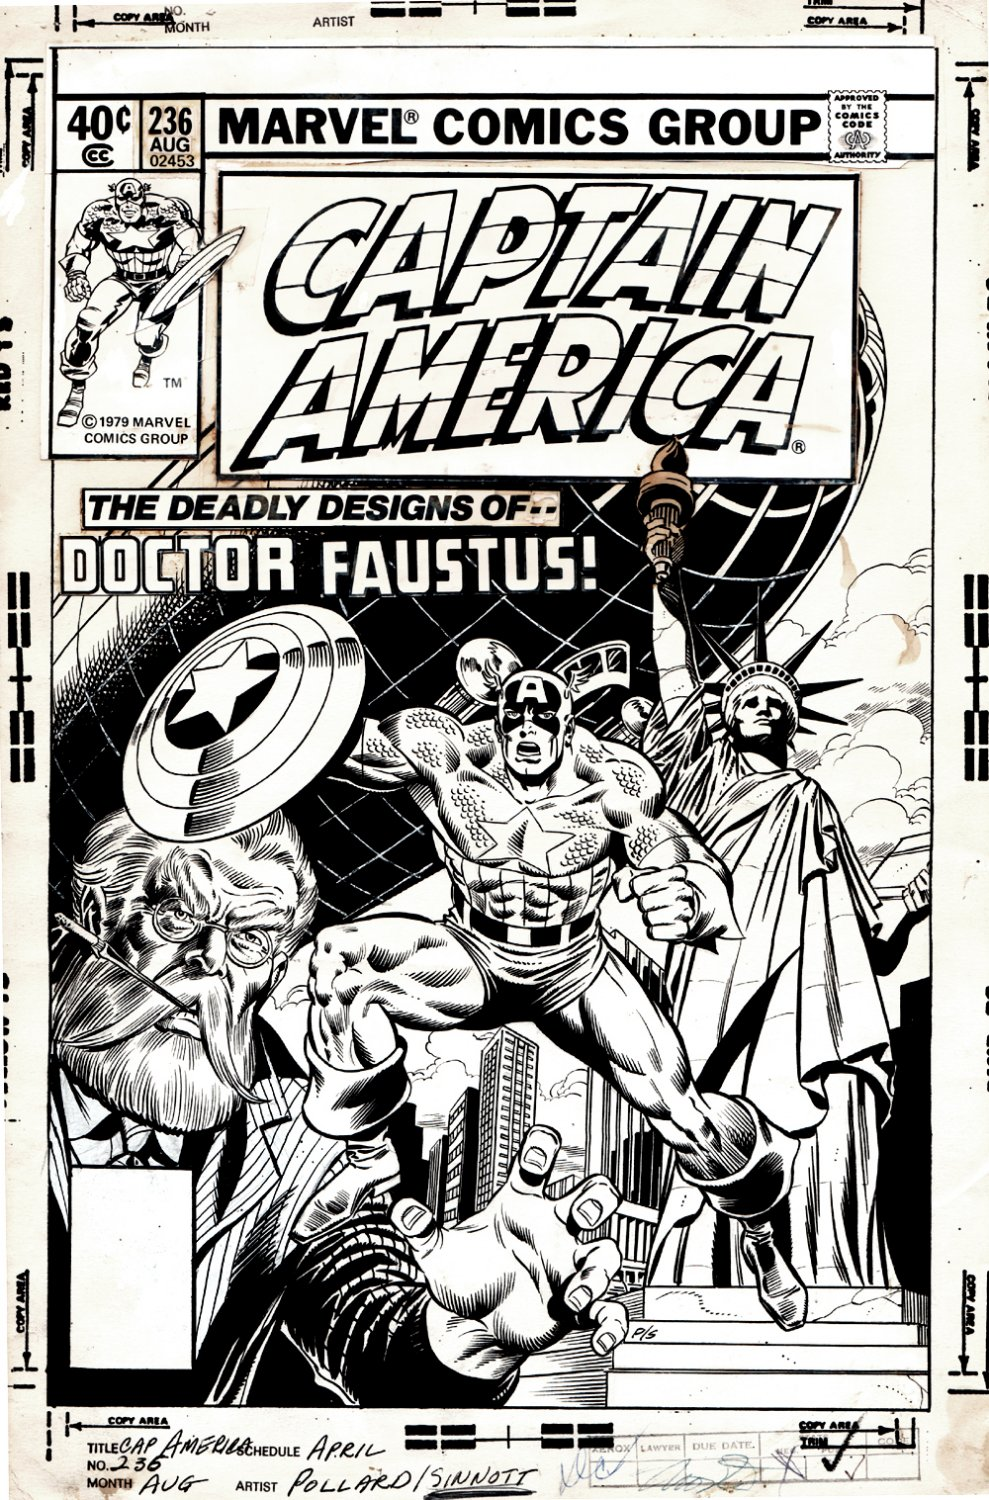 Captain America #236 Cover (1979)